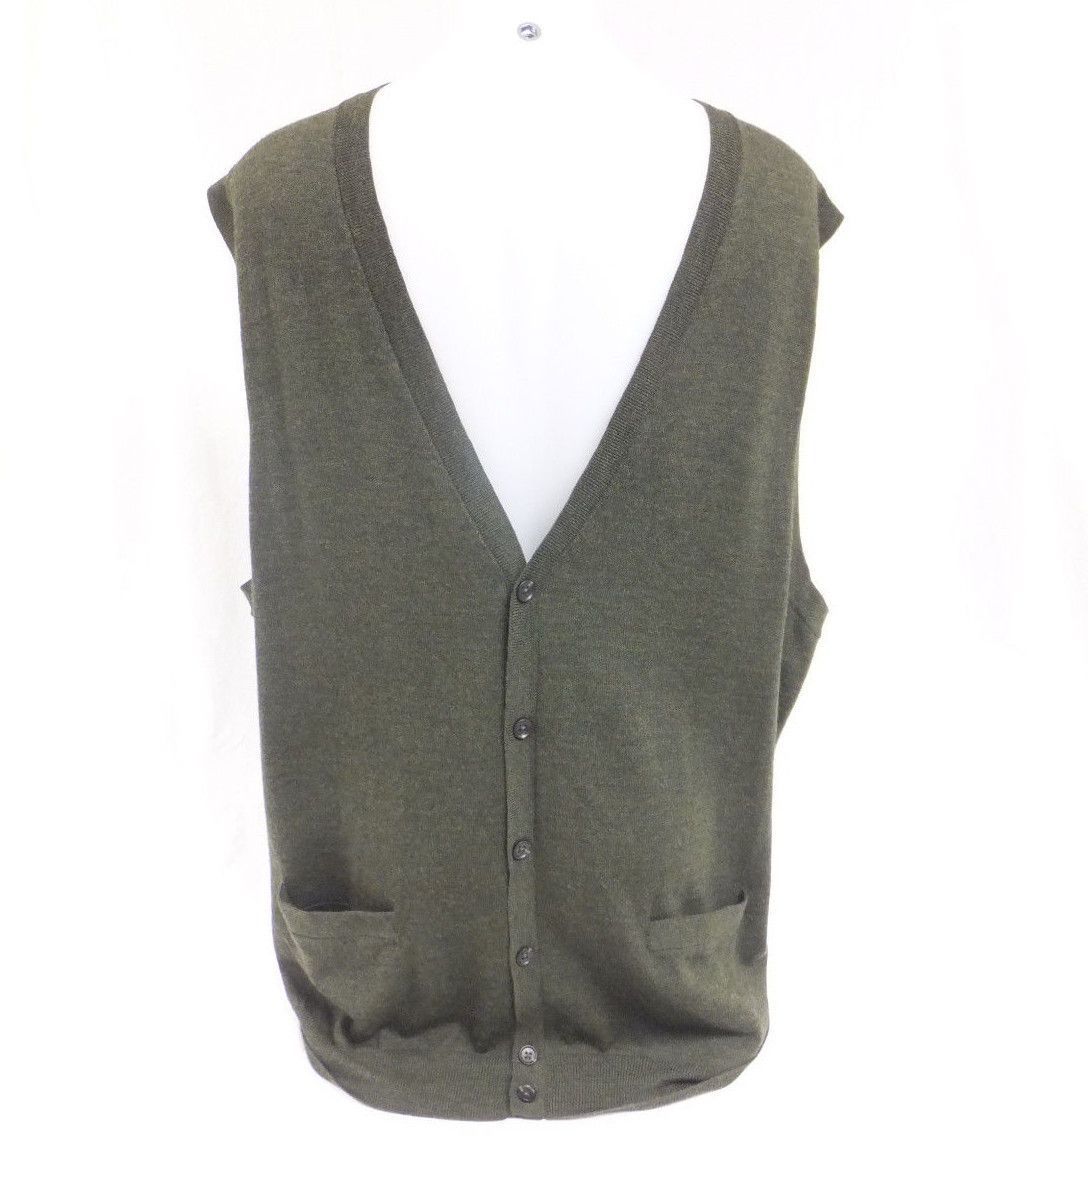 Nordstrom NWT Mens Sweater Vest XXL 2XL Solid Green 100% Merino ...